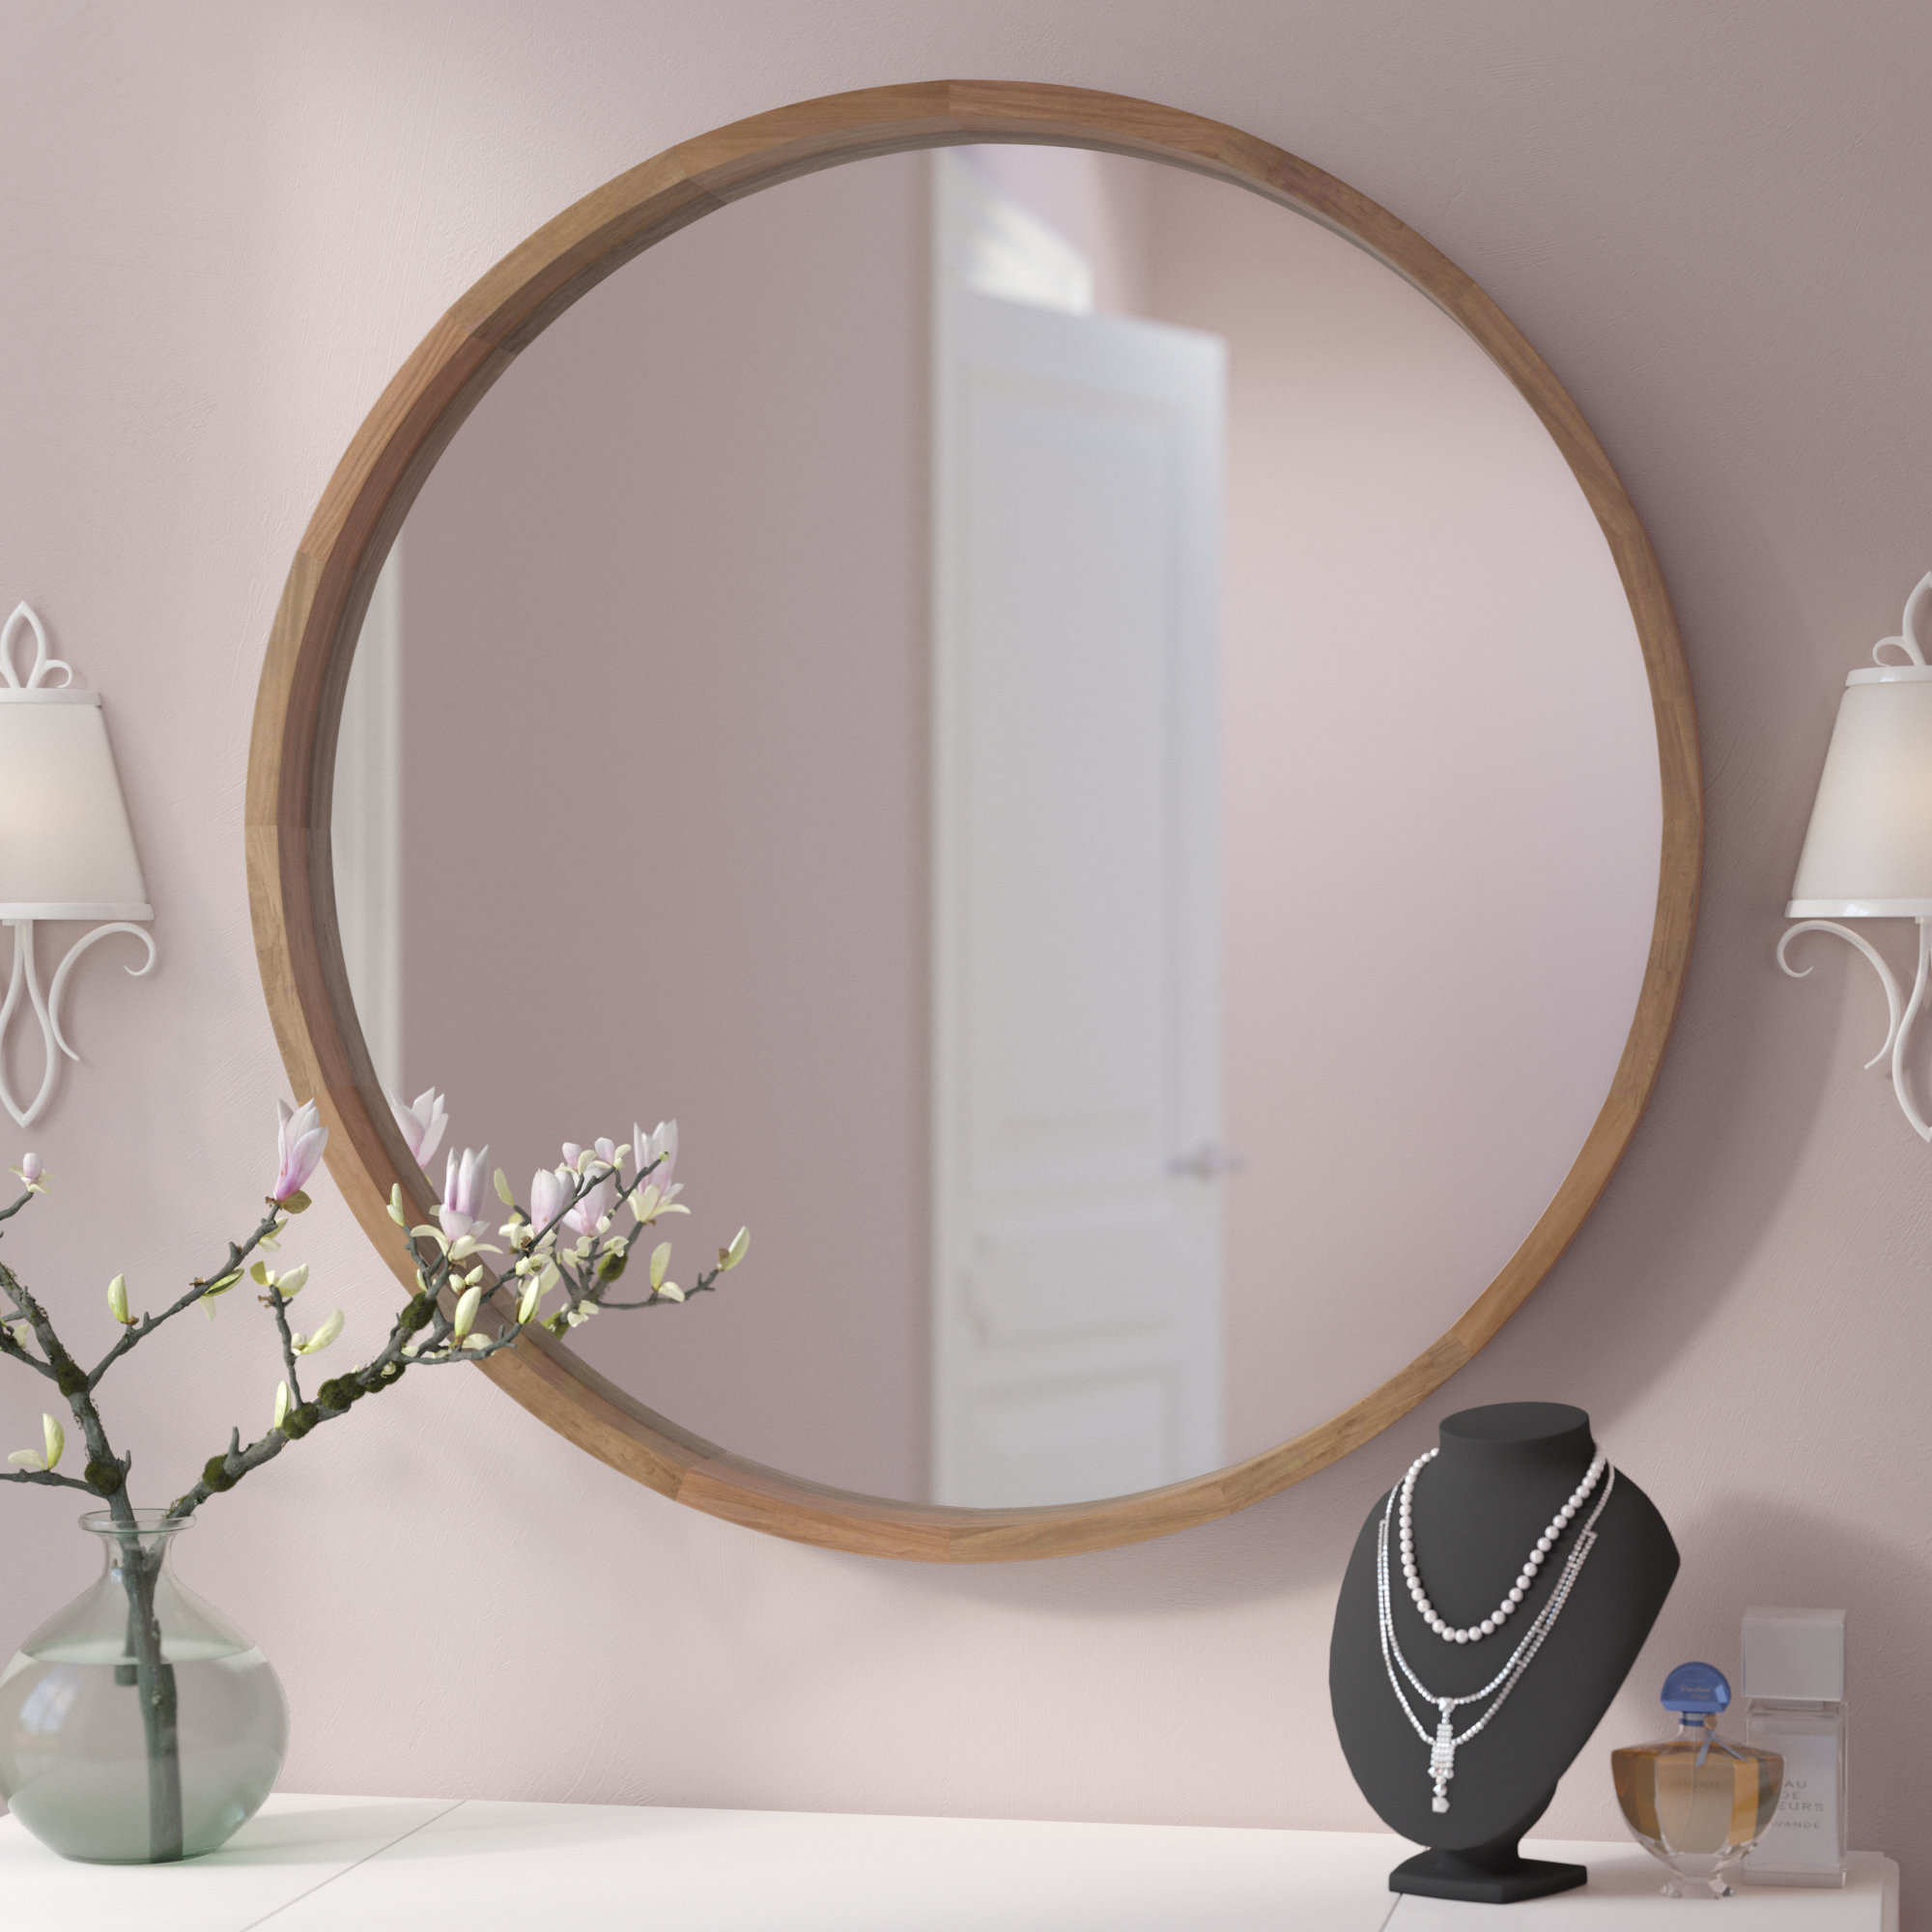 Loftis Modern & Contemporary Accent Wall Mirror Regarding Colton Modern & Contemporary Wall Mirrors (Photo 5 of 20)